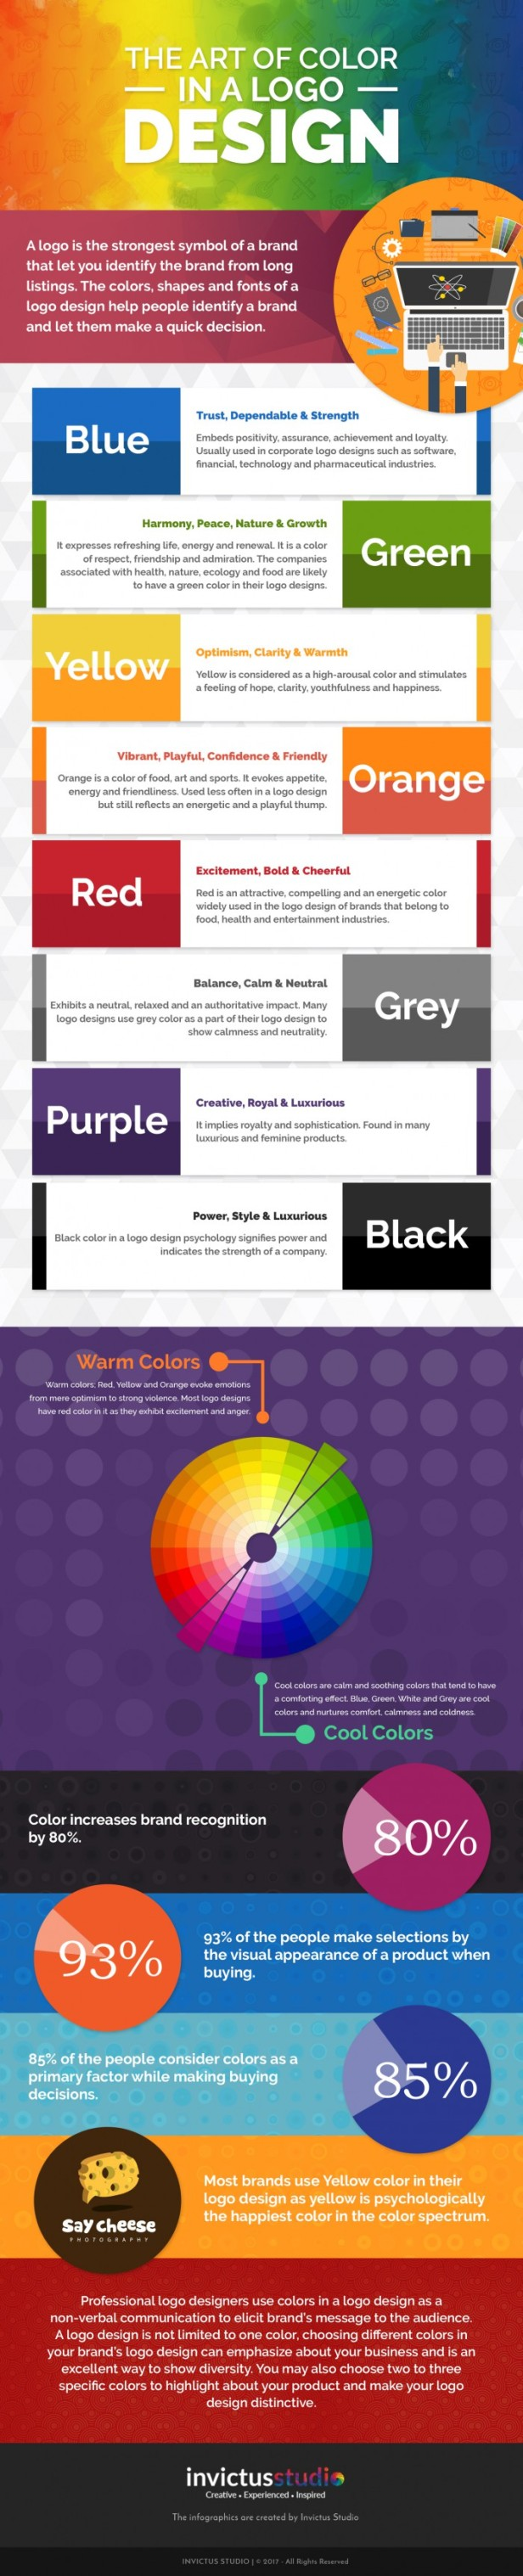 The_Art_of_Color_in_a_Logo_Design